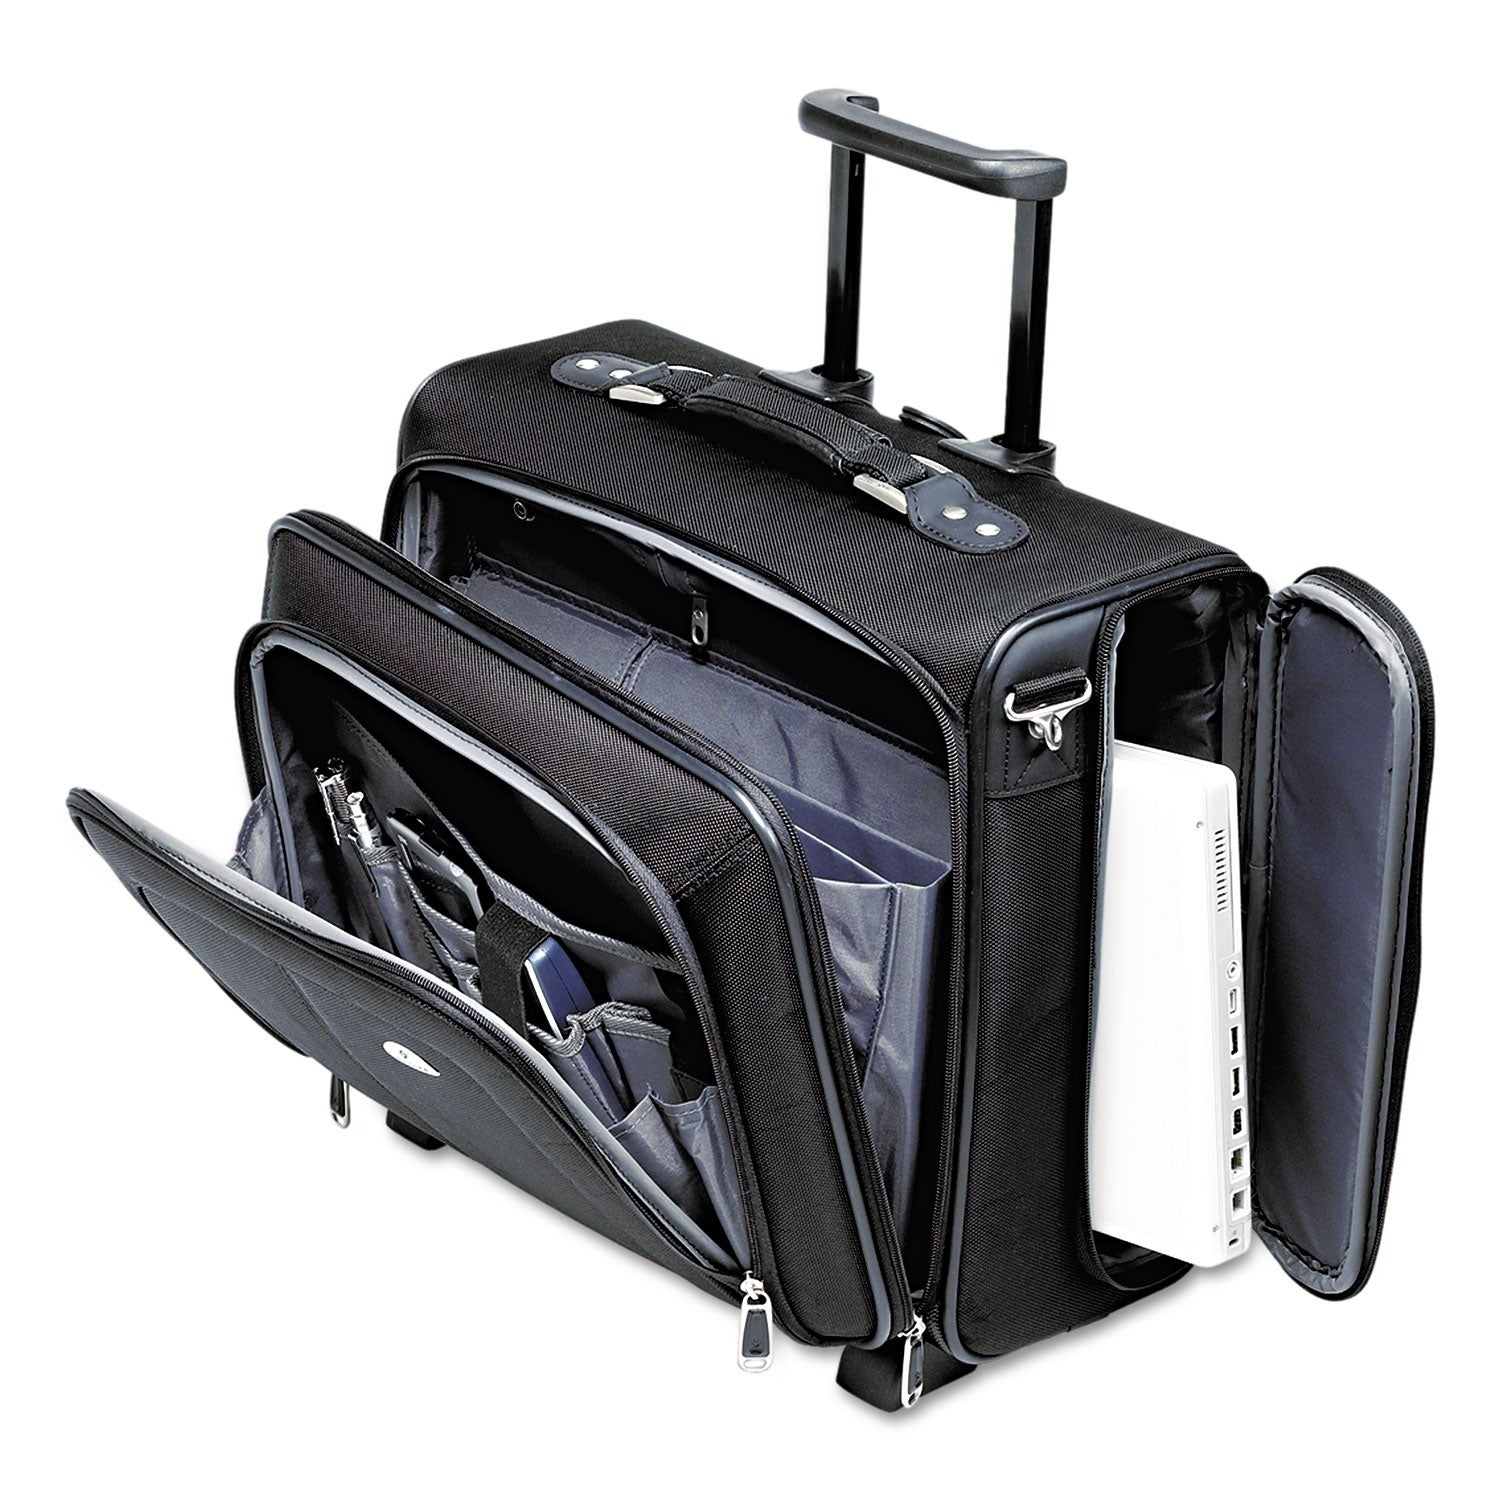 Samsonite Ballistic Nylon Side Loader Mobile Office Noteb...